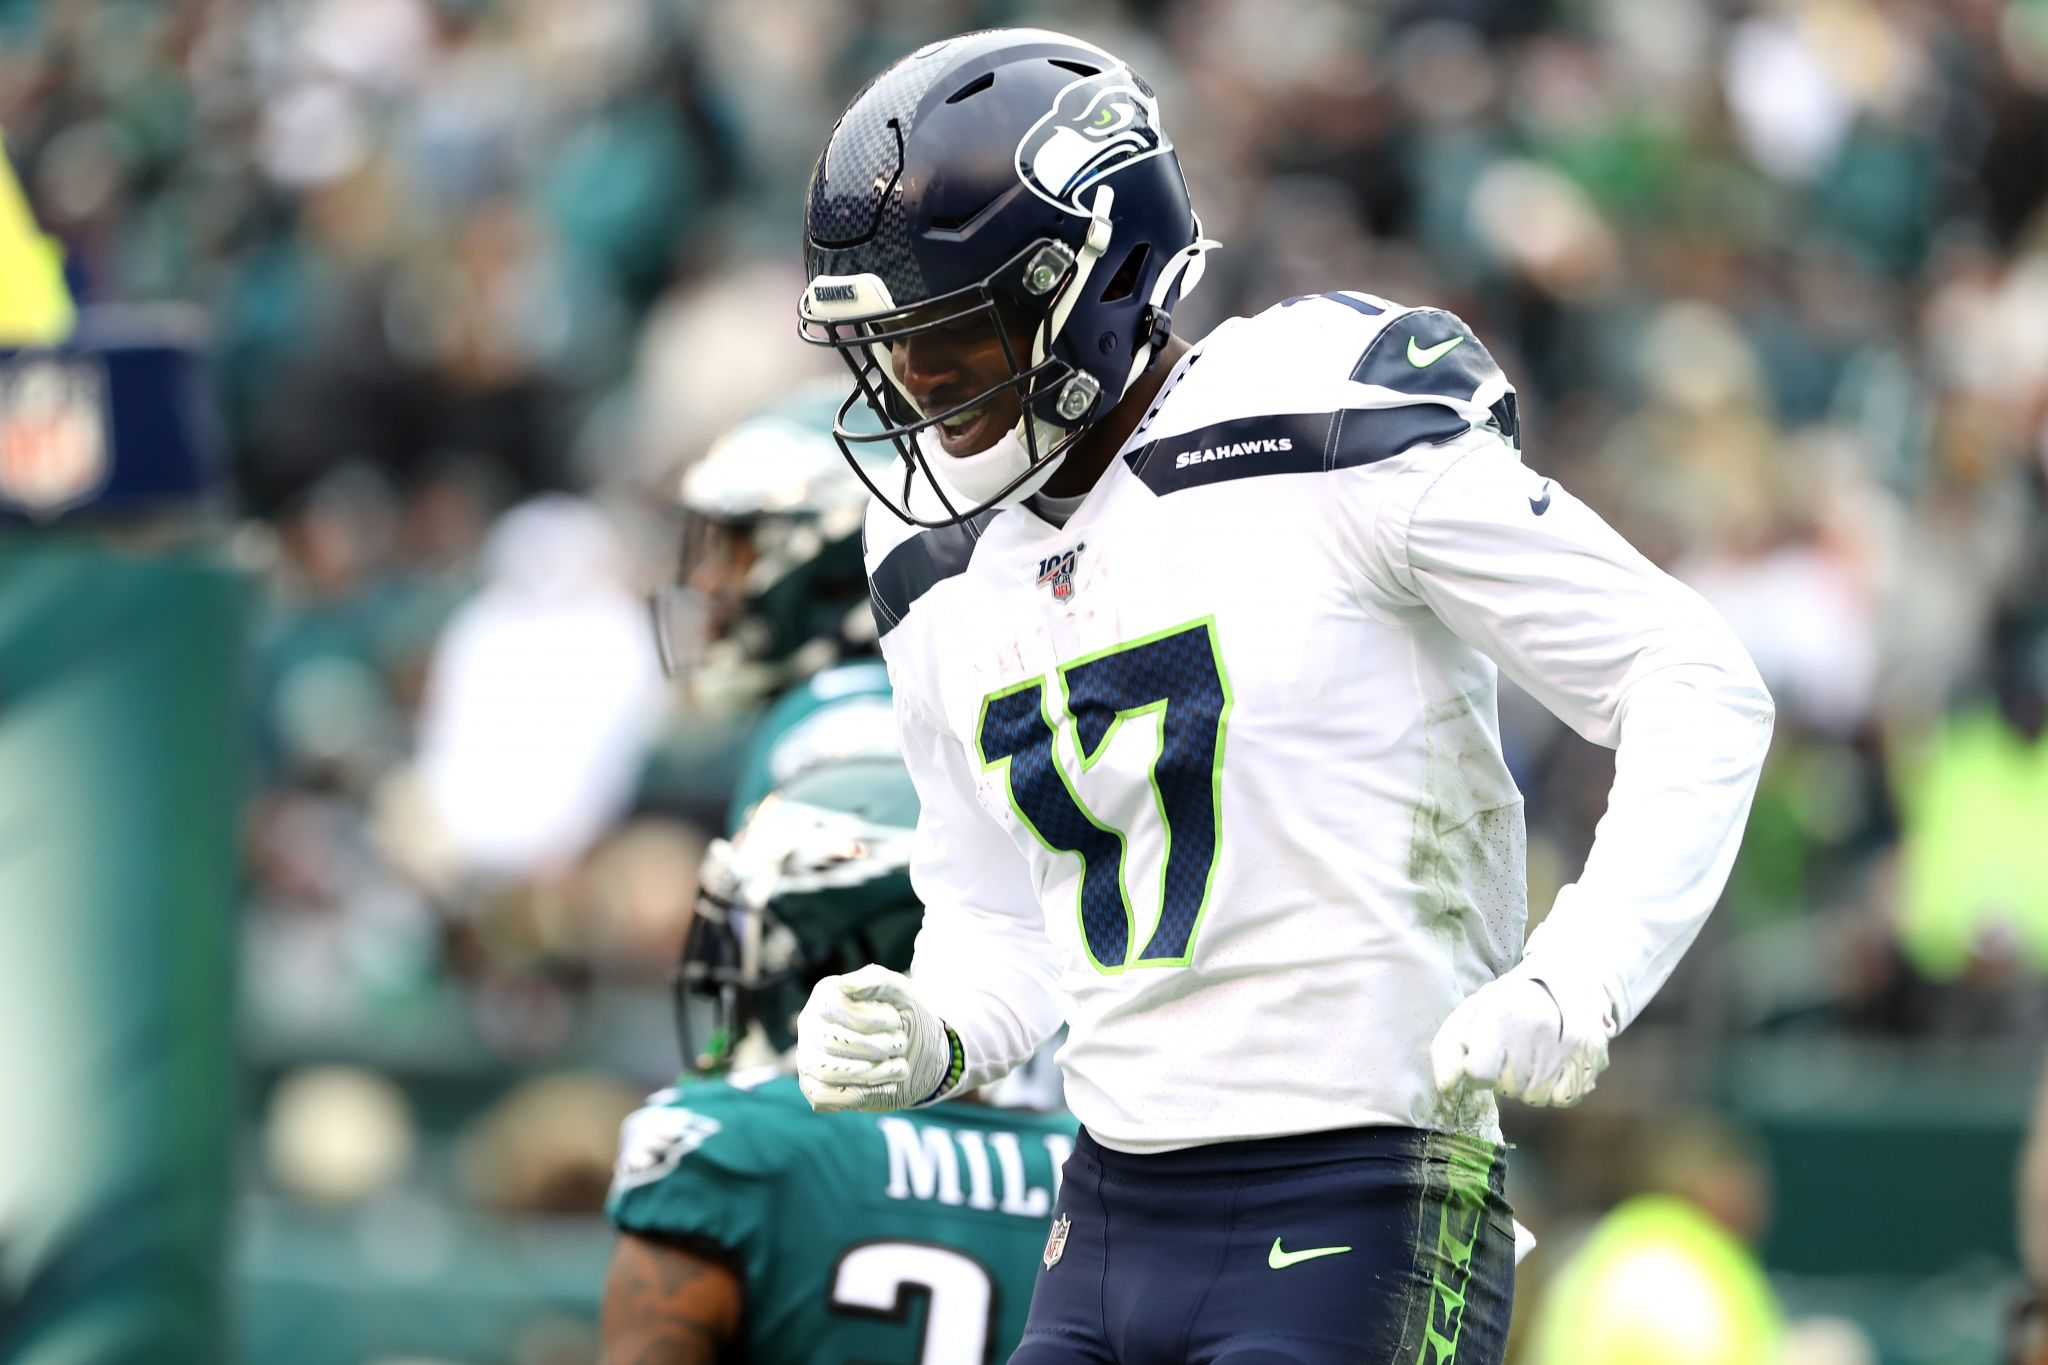 'He always goes hard': WR Malik Turner a big-impact underrated player for Seahawks